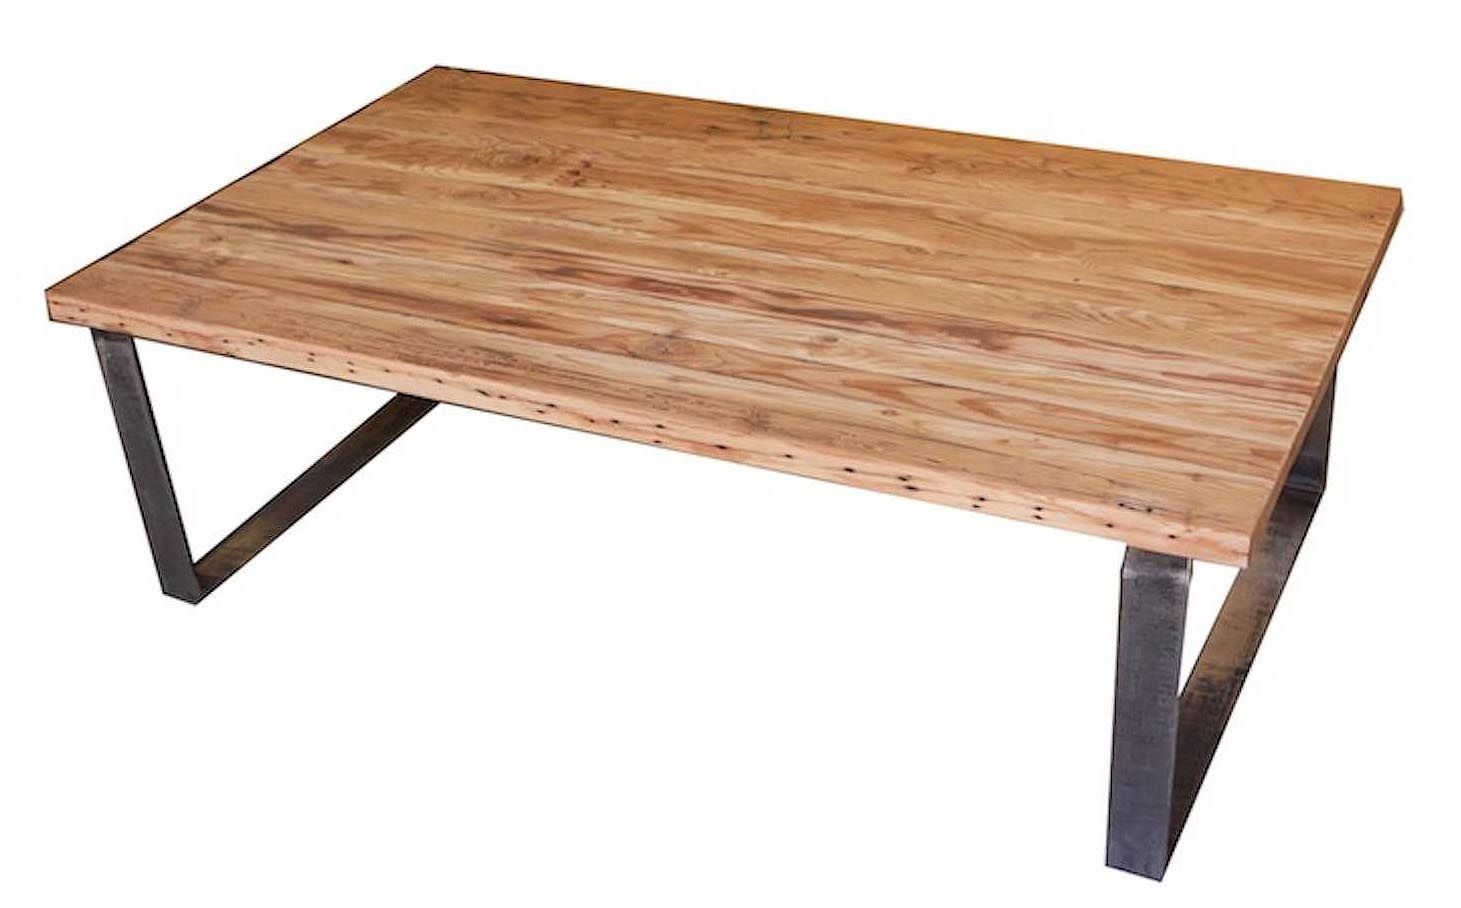 Steel Legs For Coffee Table Coffee Table Design Ideas Coffee Table Wood Round Wood Coffee Table Solid Wood Coffee Table [ 908 x 1461 Pixel ]